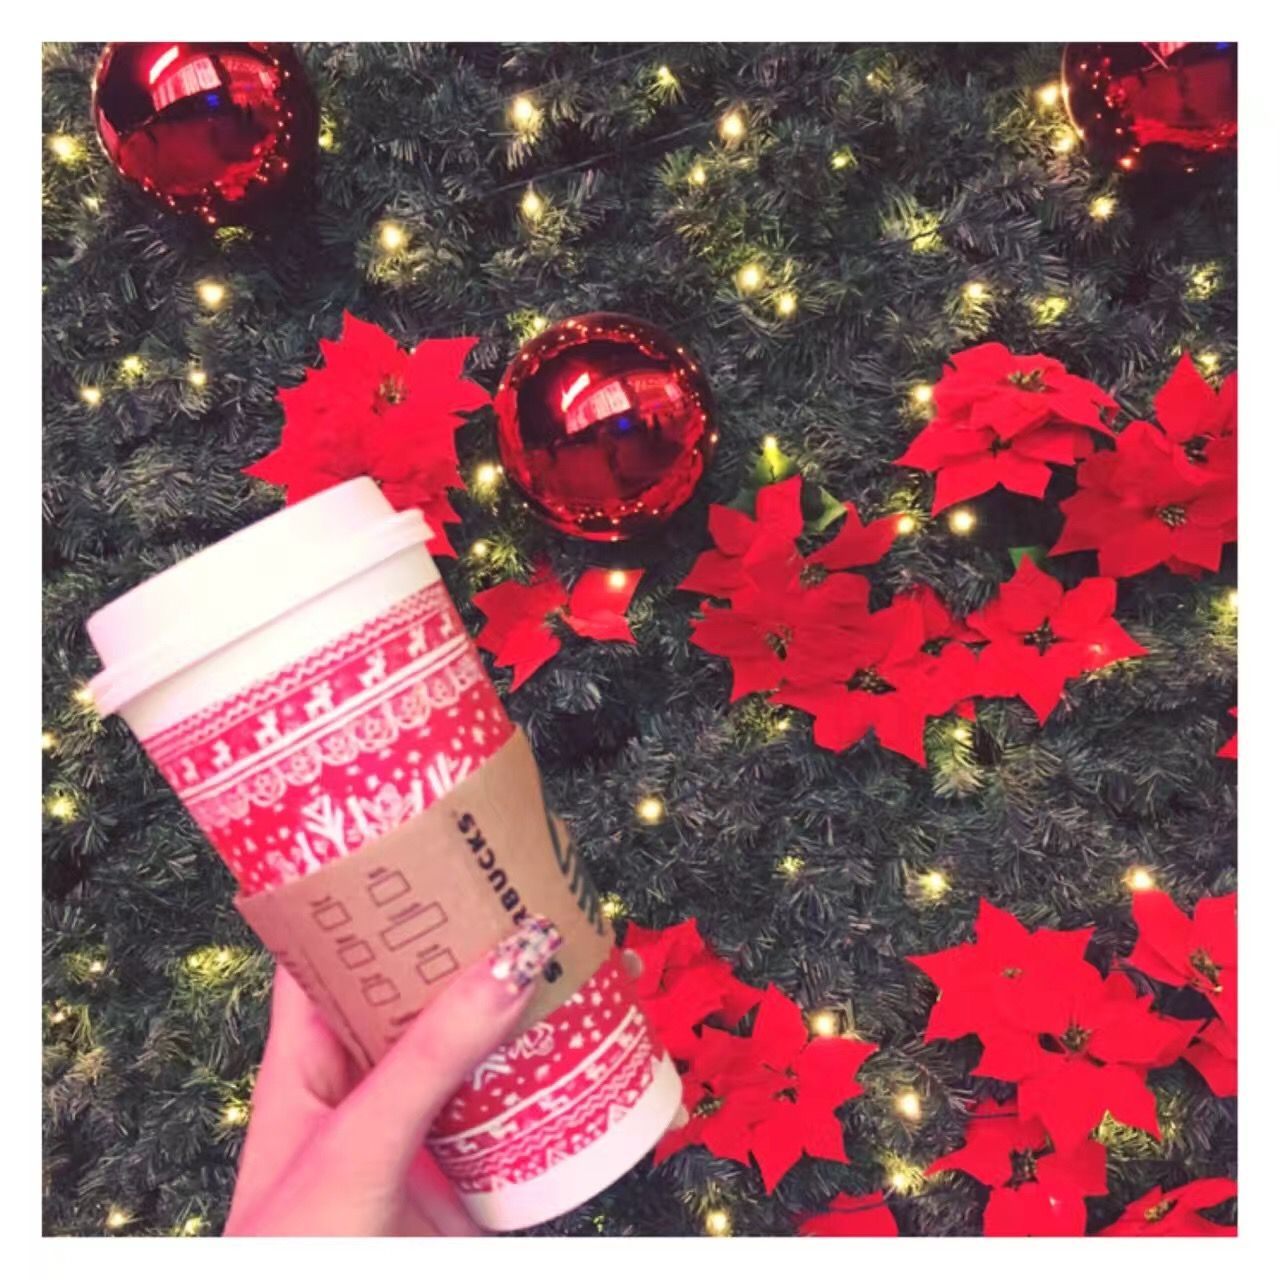 Christmas haven't come yet, but Guangzhou is prepared to meet this special day! #red #Starbucks #coffee #Christmas #bell #tree